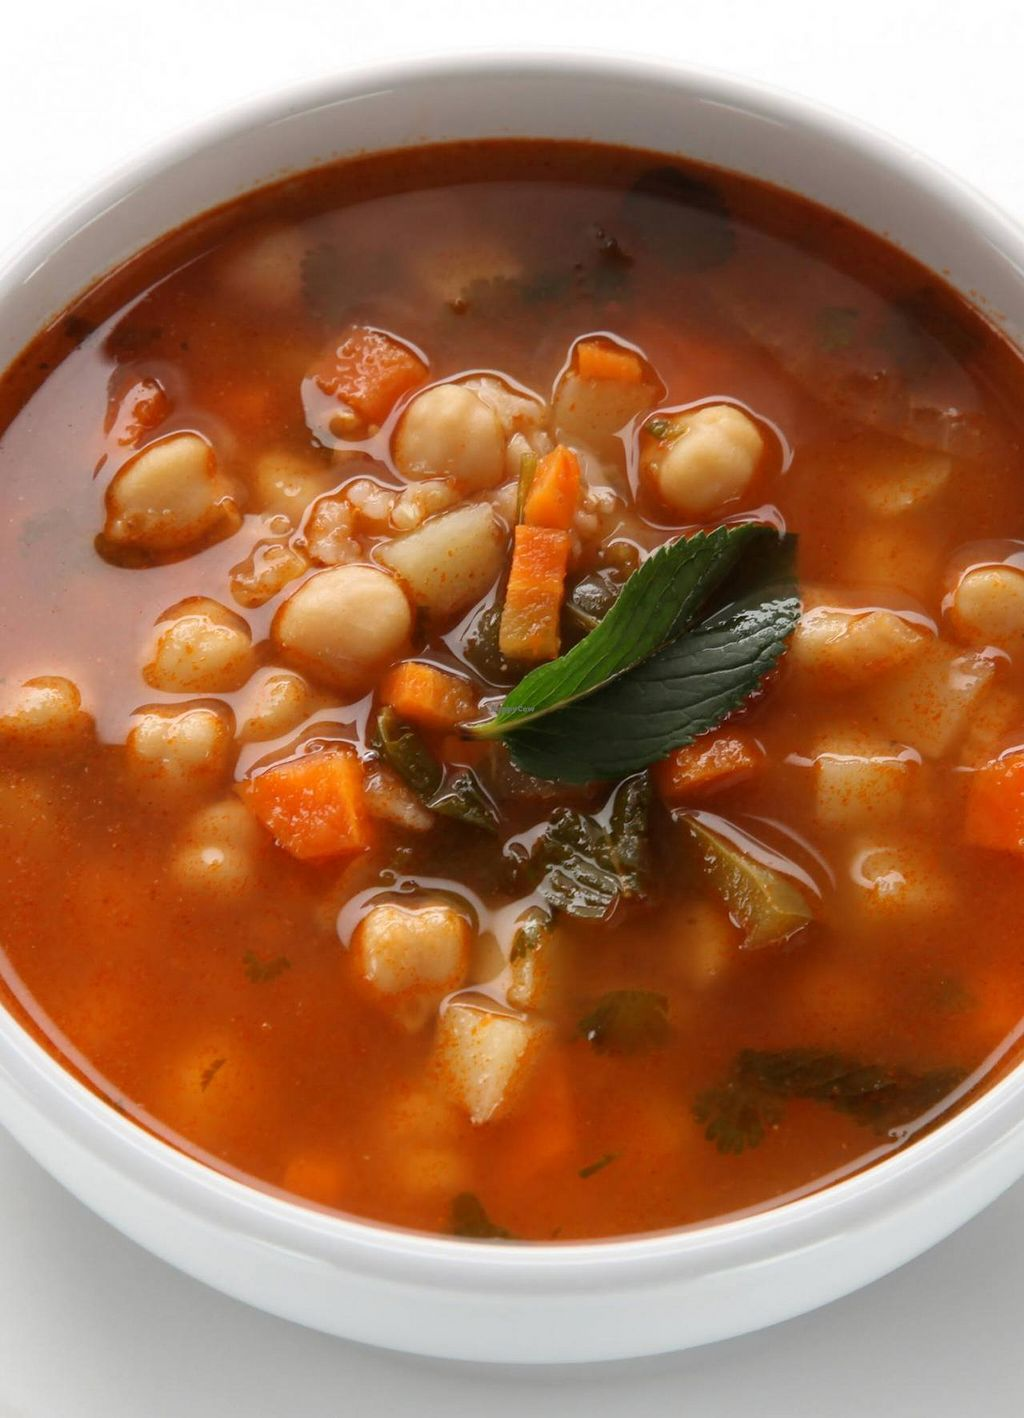 """Photo of El Quinto Sol  by <a href=""""/members/profile/ElQuintoSol"""">ElQuintoSol</a> <br/>Chickpeas and rice soup <br/> March 18, 2015  - <a href='/contact/abuse/image/41267/96094'>Report</a>"""